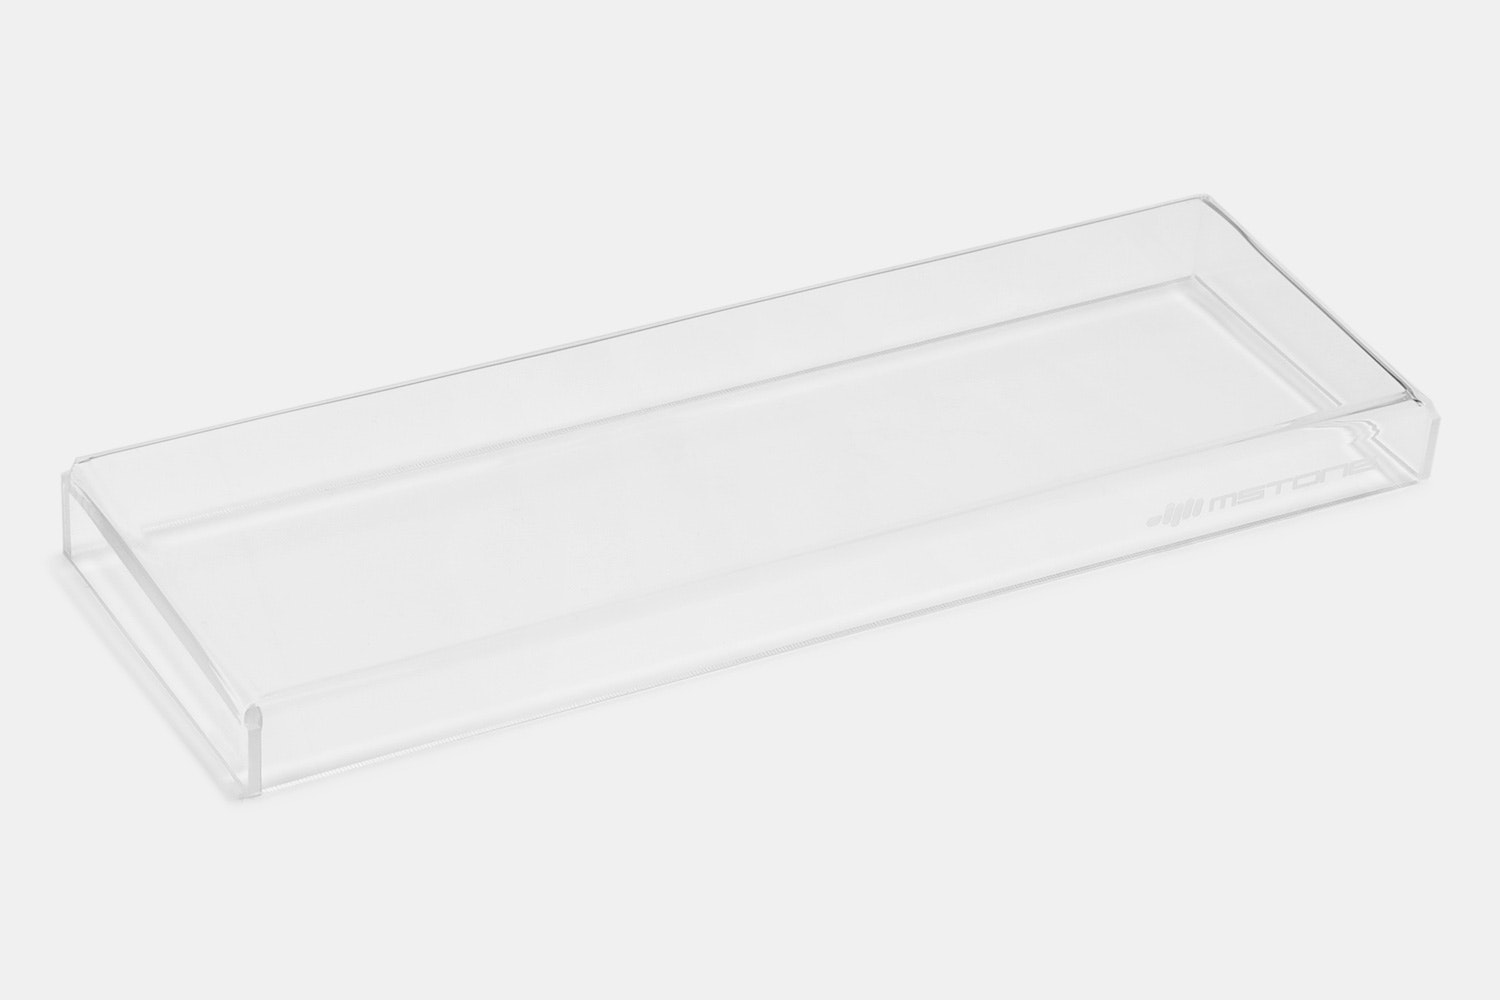 mStone Acrylic Keyboard Dust Cover for 65% Keyboards